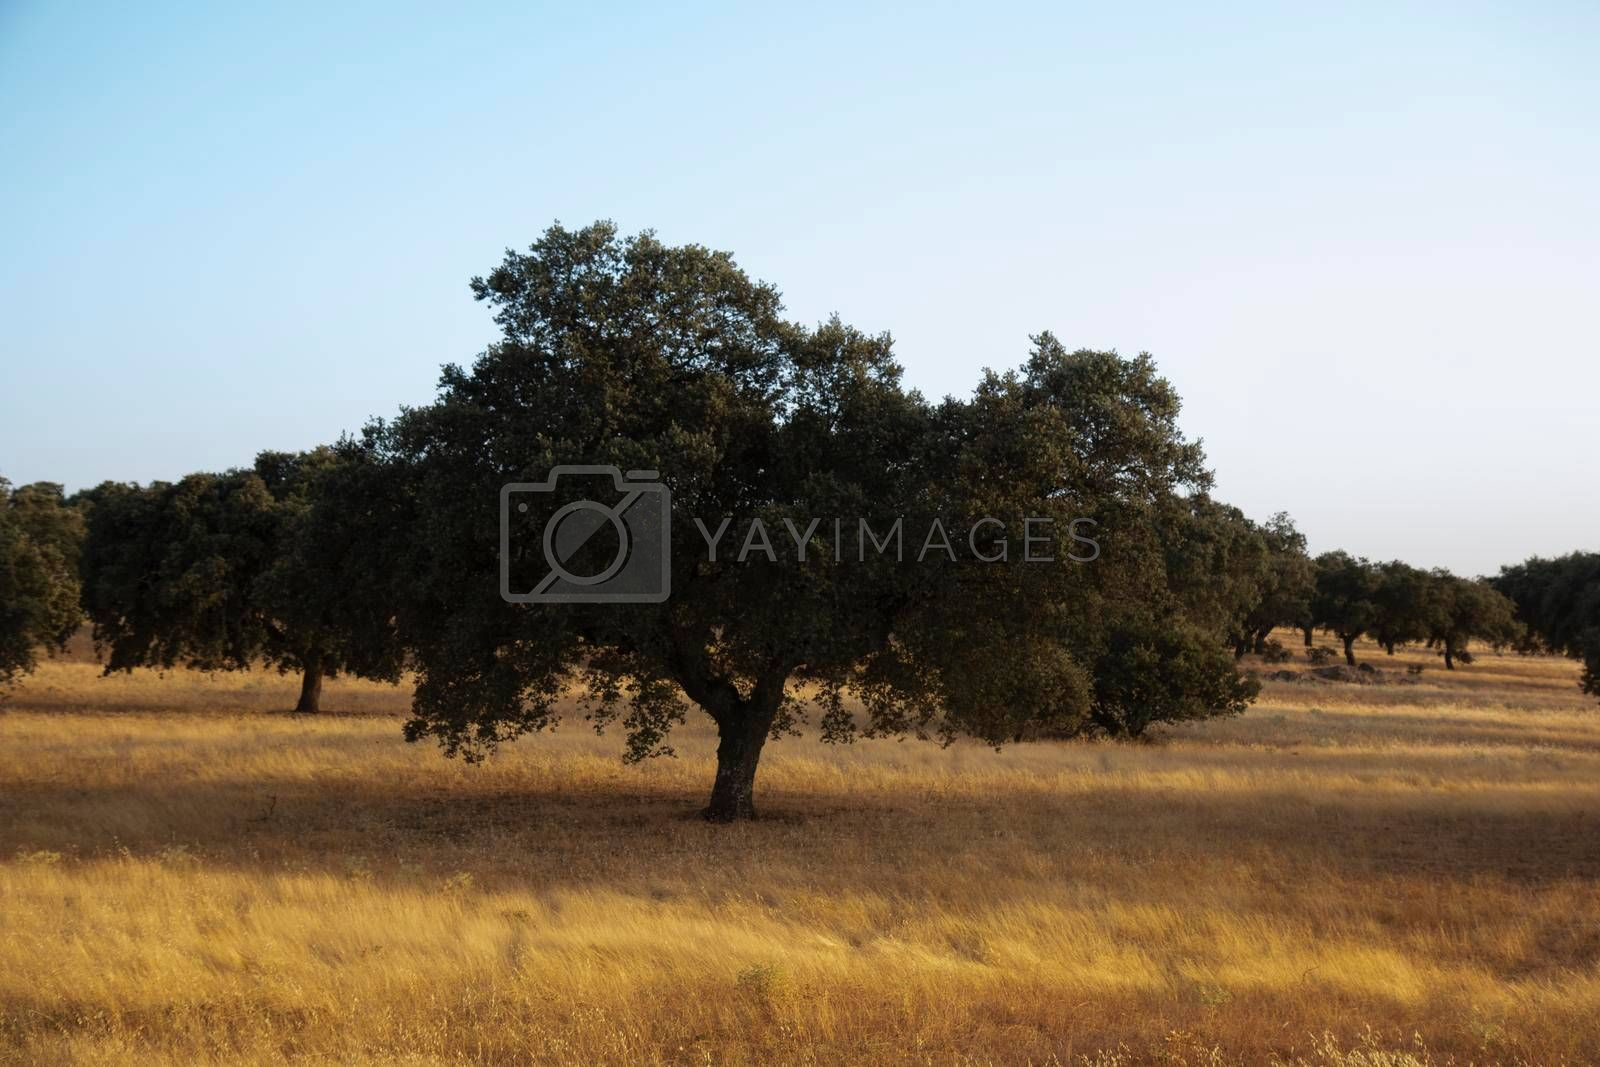 tree acorns to sustain the Iberian pig in southern Andalusia